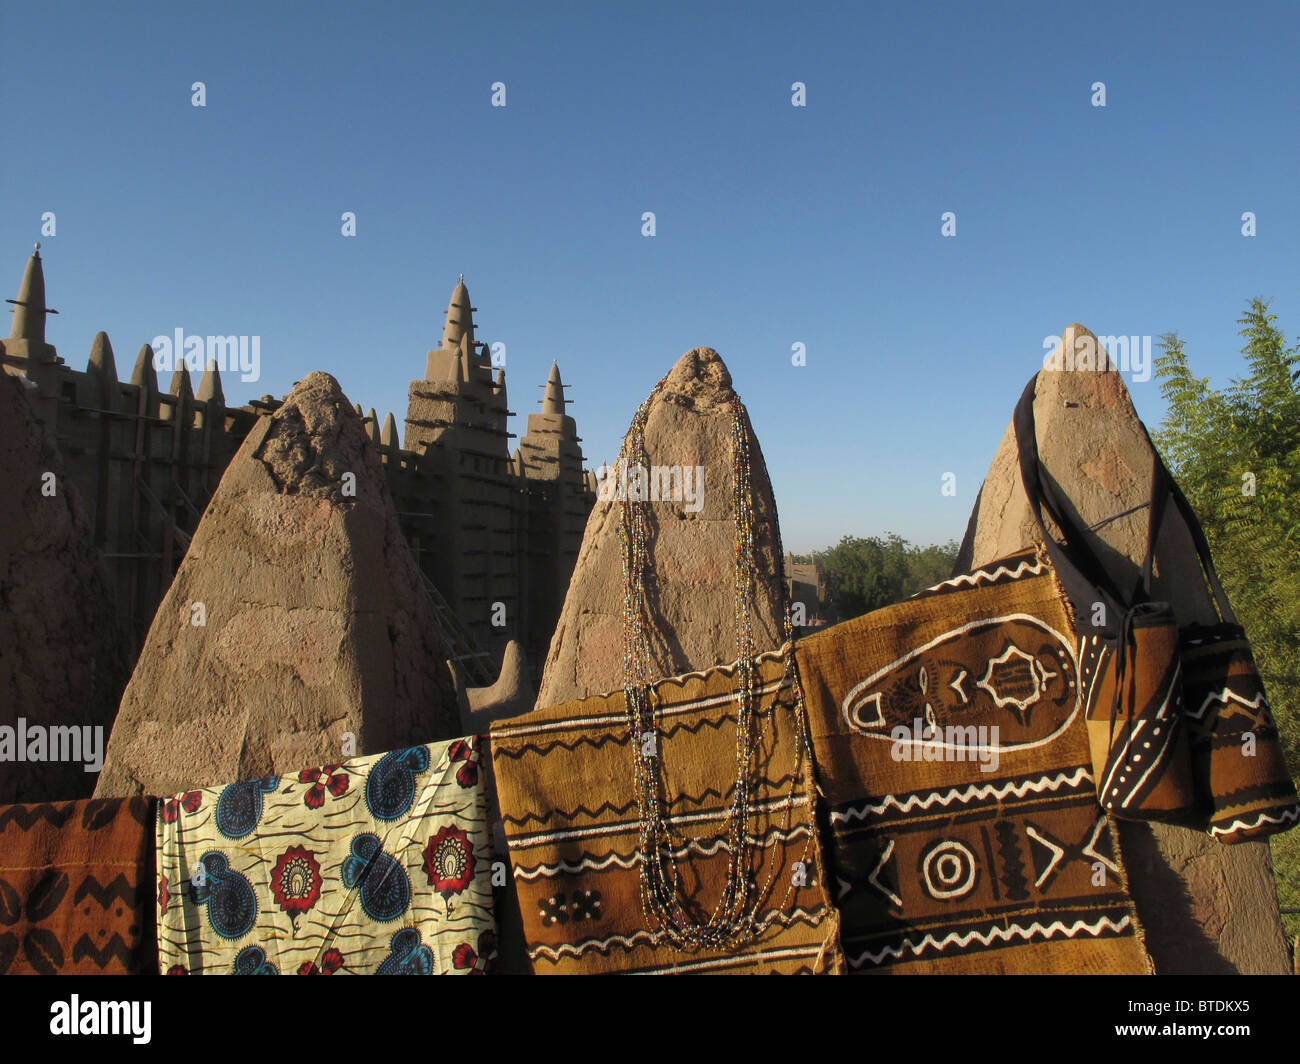 Traditional mud-cloth fabric (bogolan) for sale at the Djenne market - Stock Image